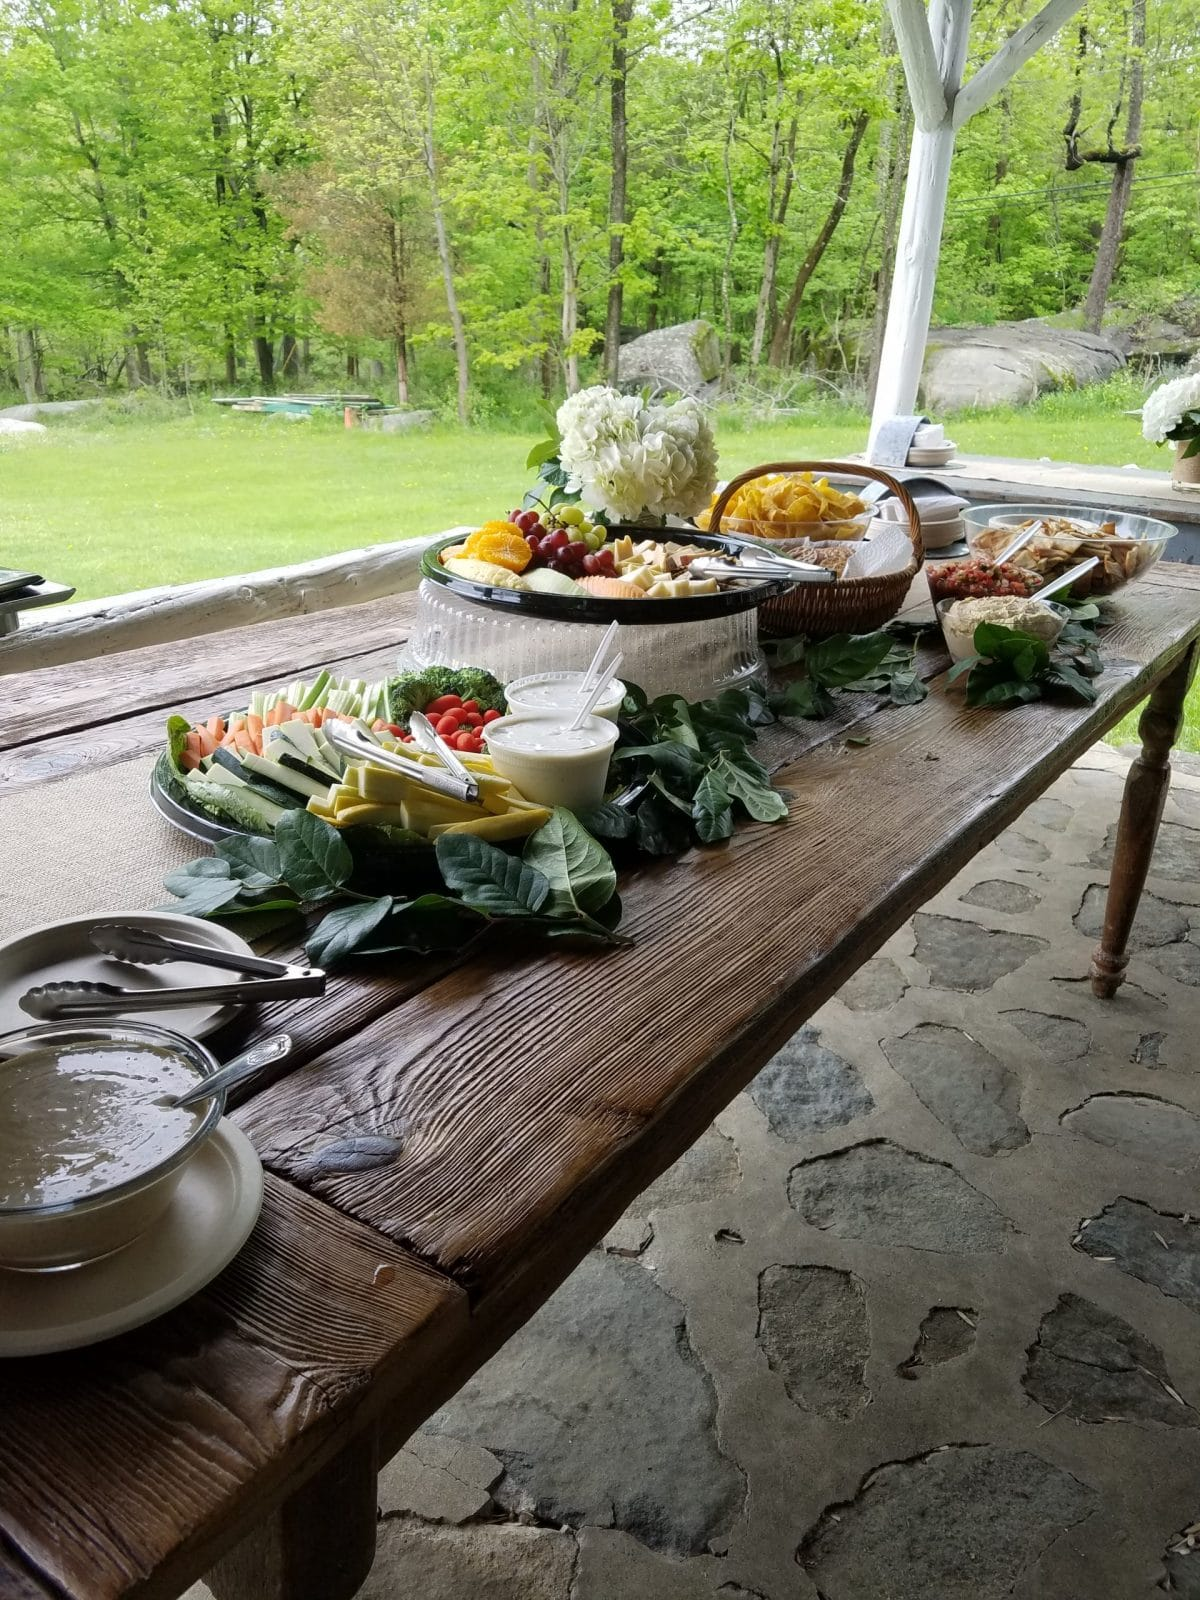 Wedding-appetizer-display-outdoors